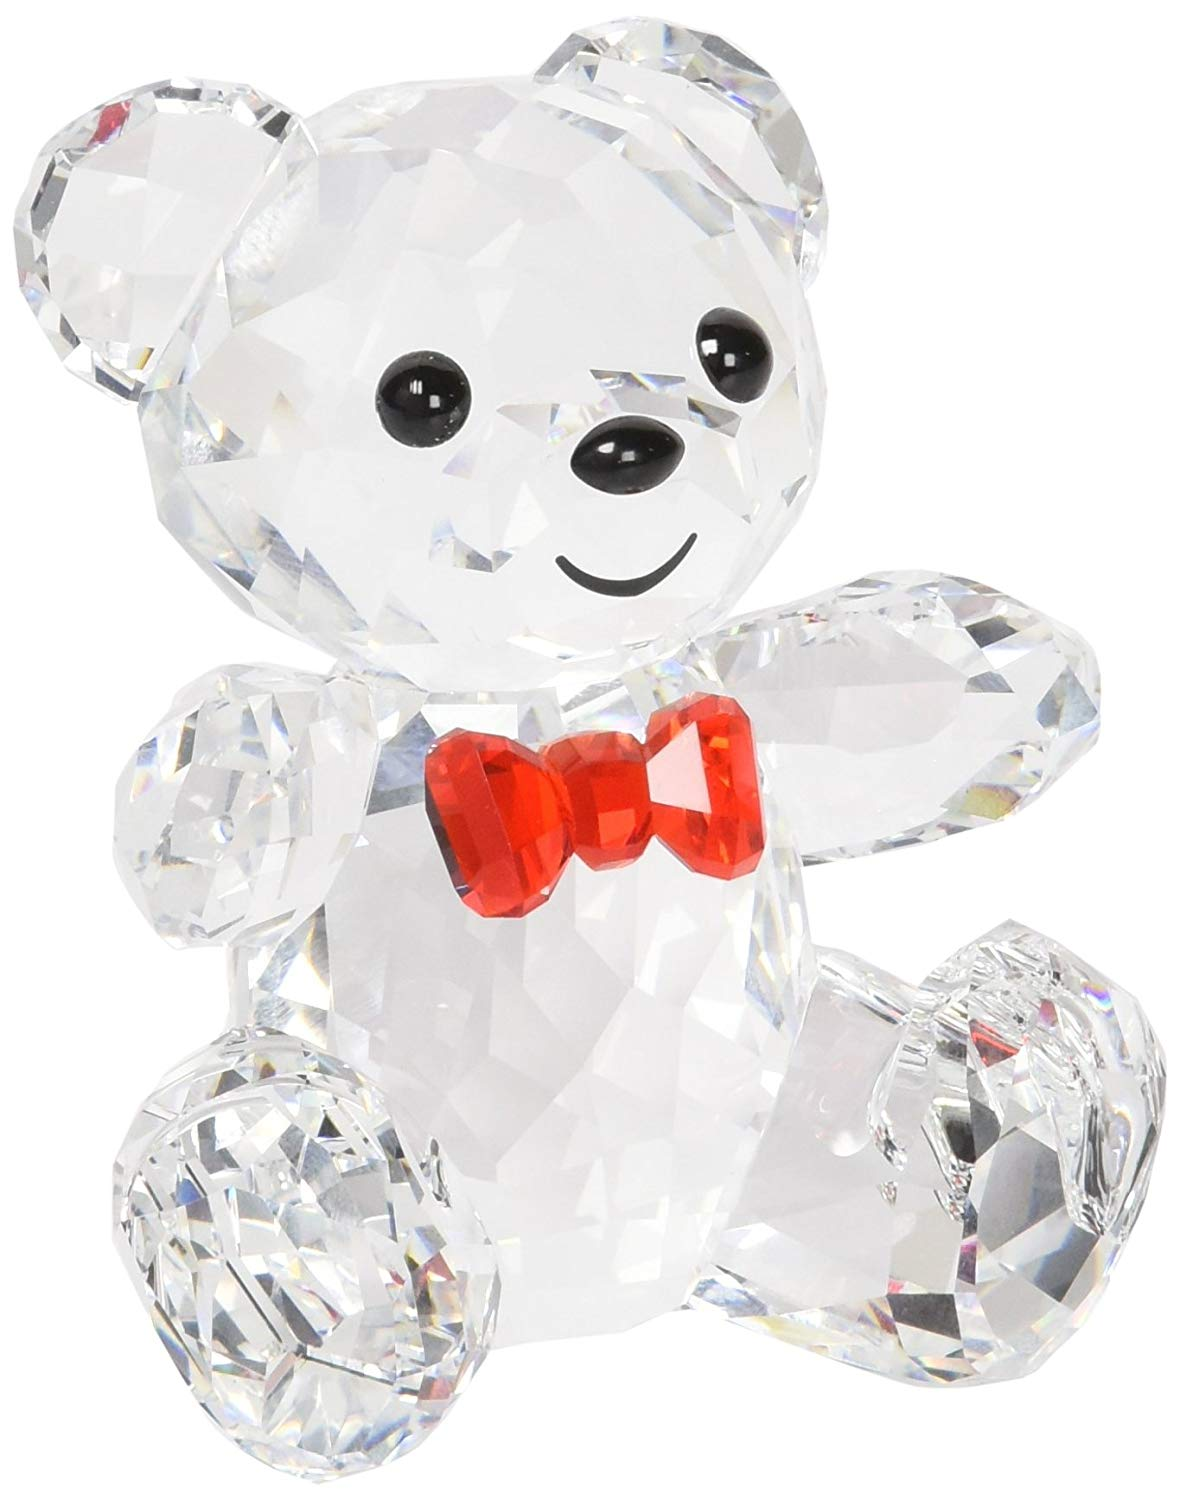 Swarovski KRIS BEAR - I AM BIG NOW - china-cabinet.com